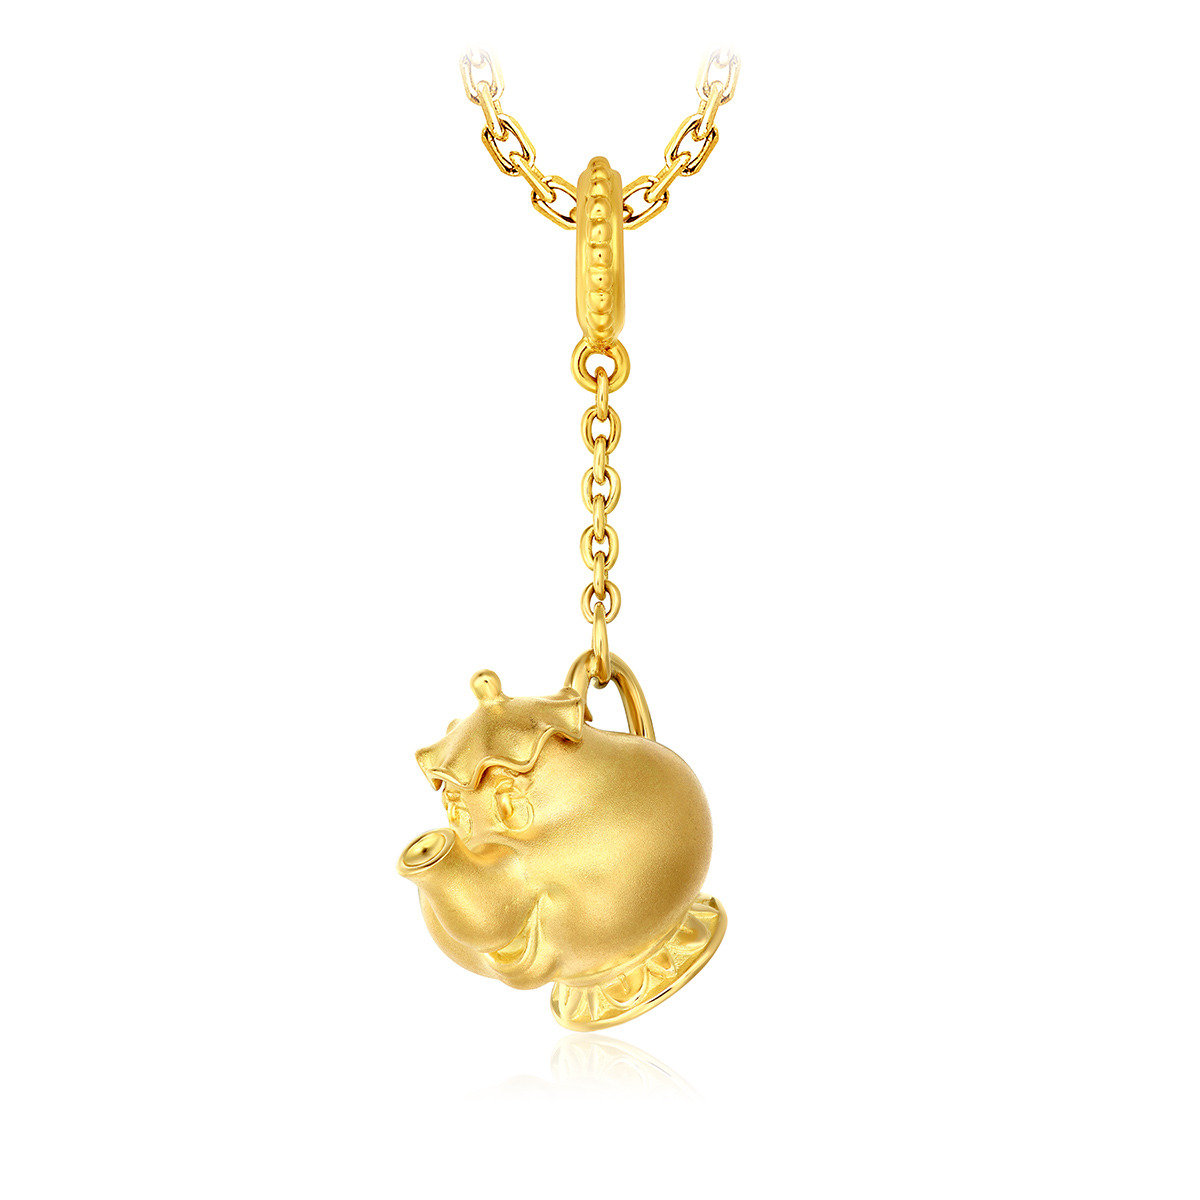 Disney Beauty & the Beast: Mrs. Potts 18K/ 750 Yellow Gold pendant